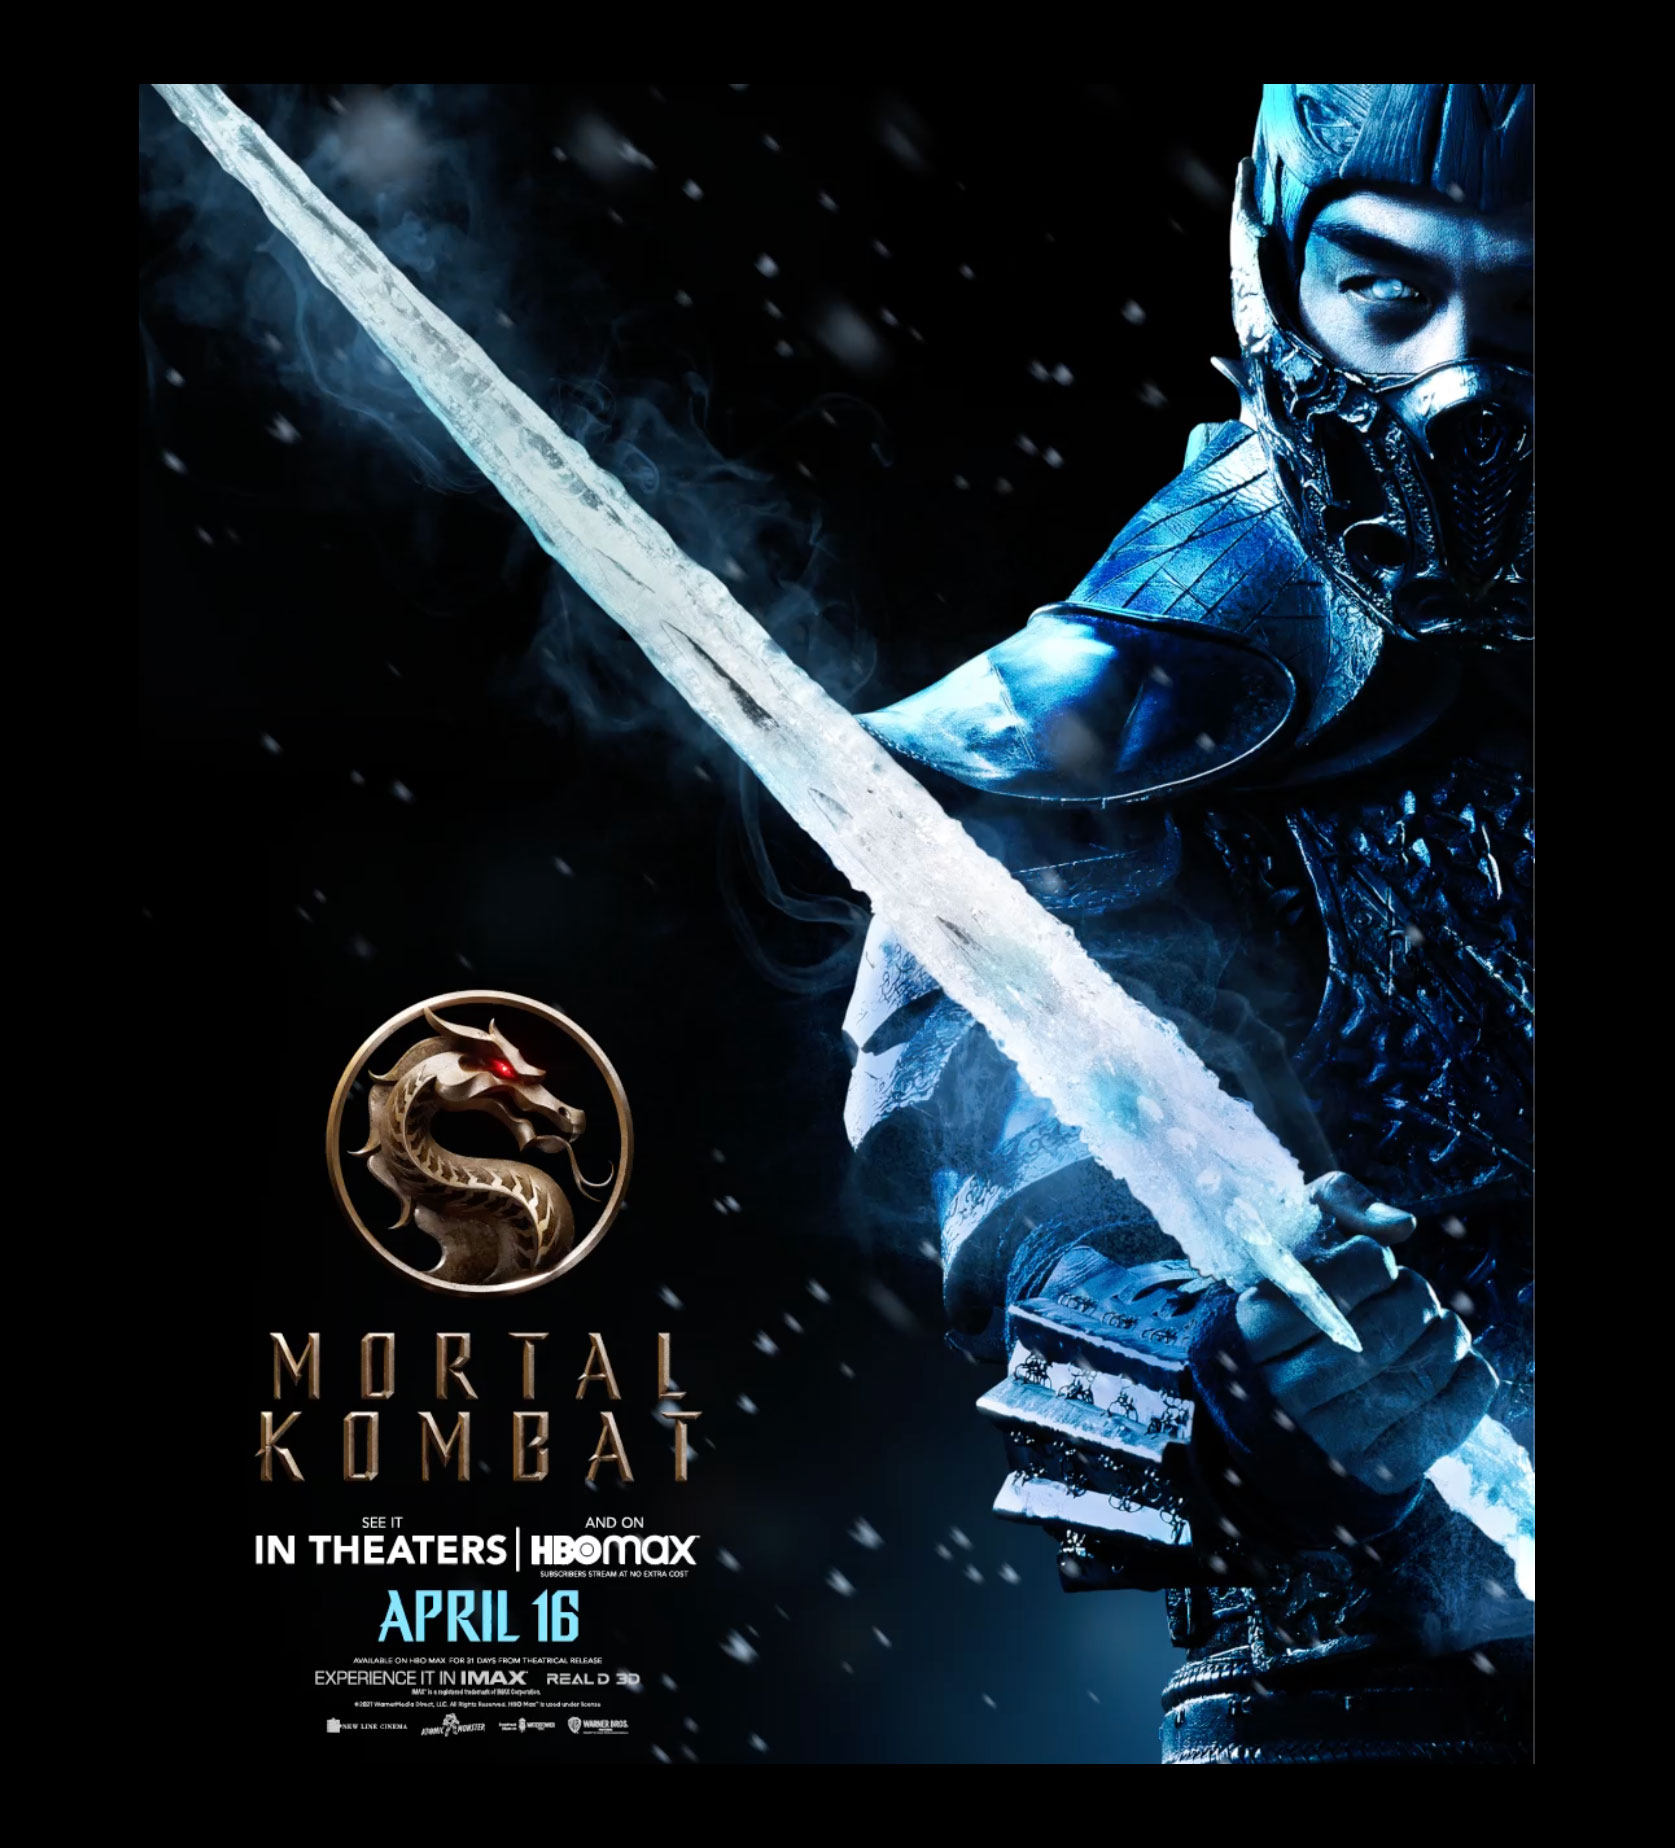 Mortal Kombat Trailer Live Now